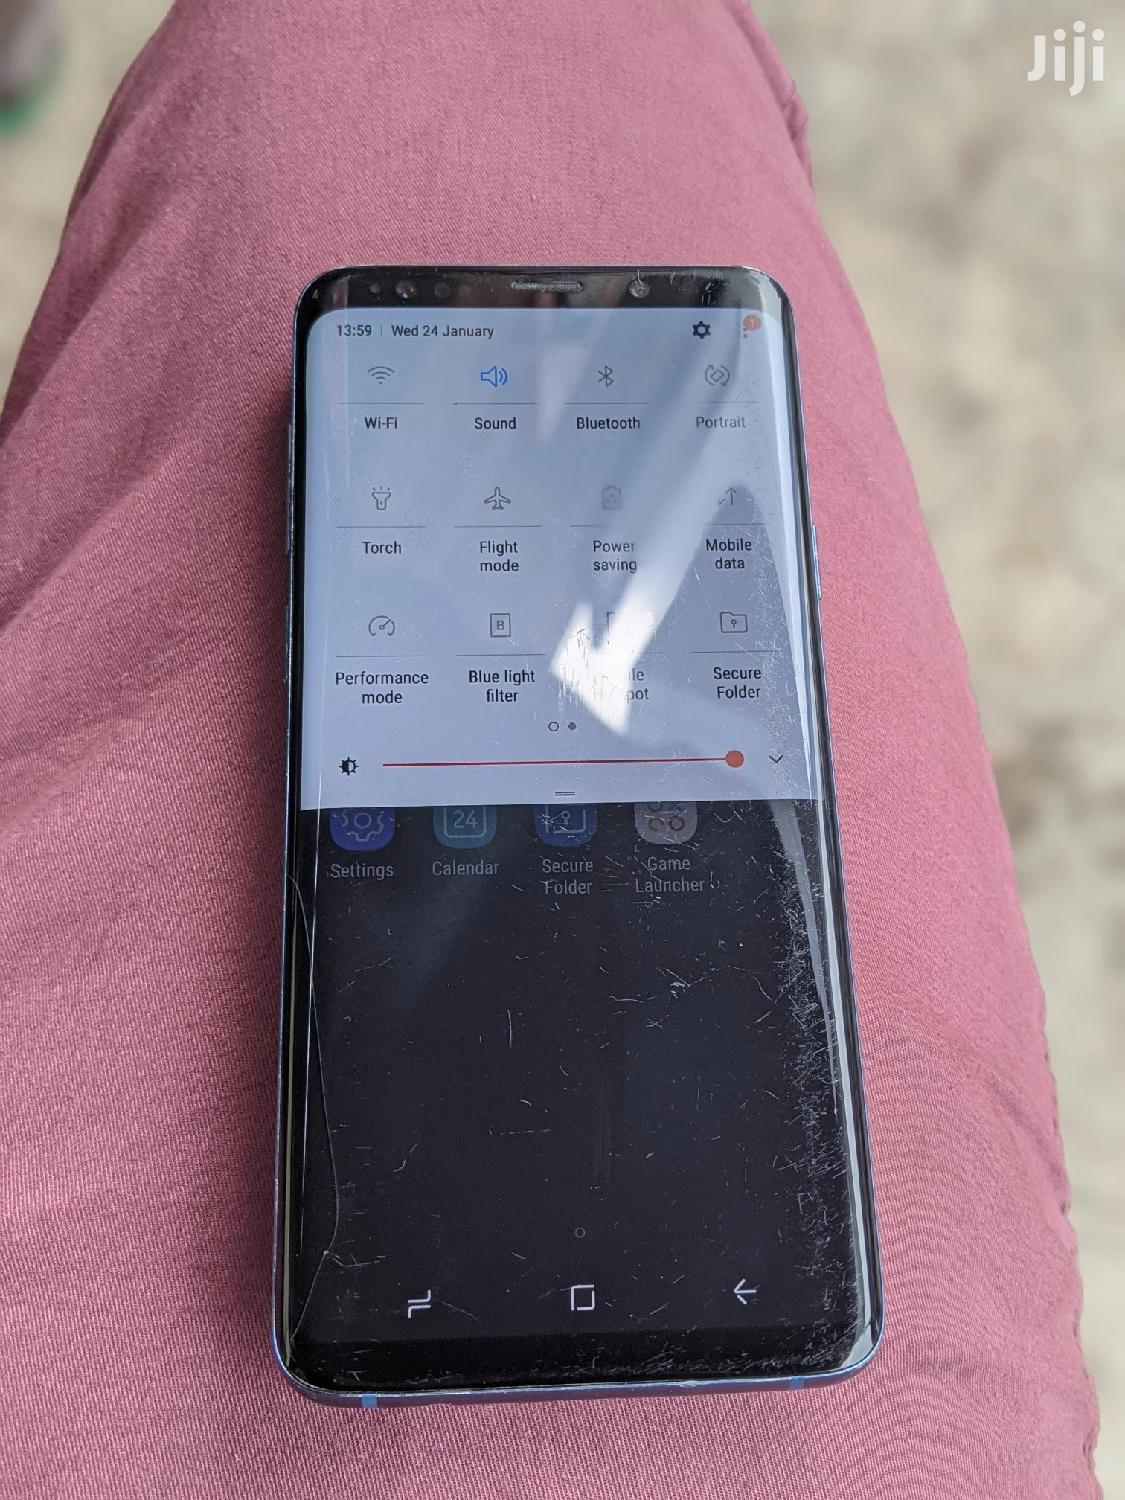 Samsung Galaxy S9 Plus 128 GB Blue   Mobile Phones for sale in Accra Metropolitan, Greater Accra, Ghana